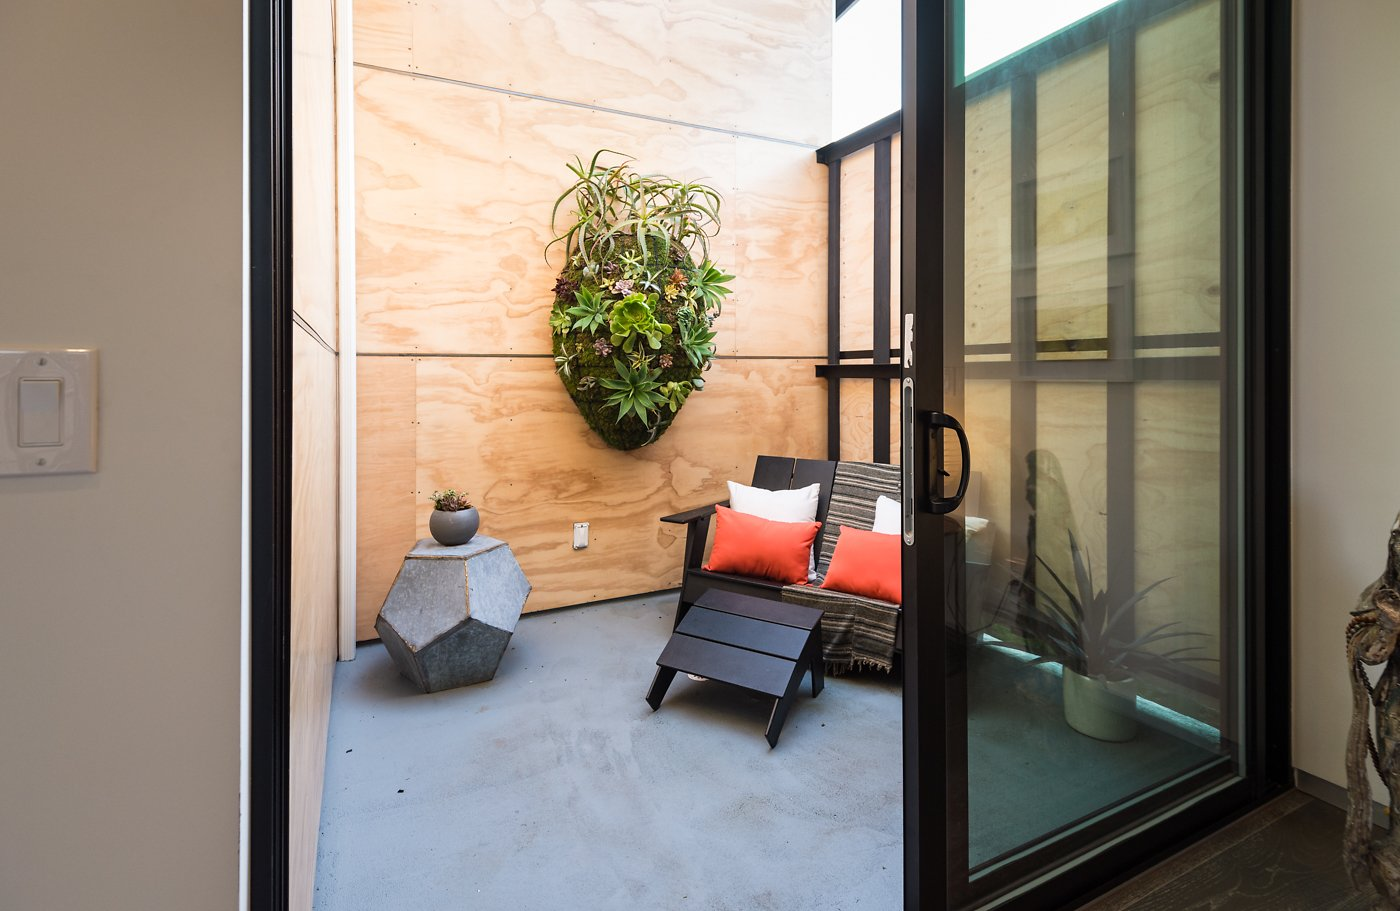 Outdoor, Garden, Flowers, Wood, Small, Horizontal, Wood, Vertical, Decking, and Hanging  Best Outdoor Flowers Vertical Photos from Homeside House | HMDG Inc.